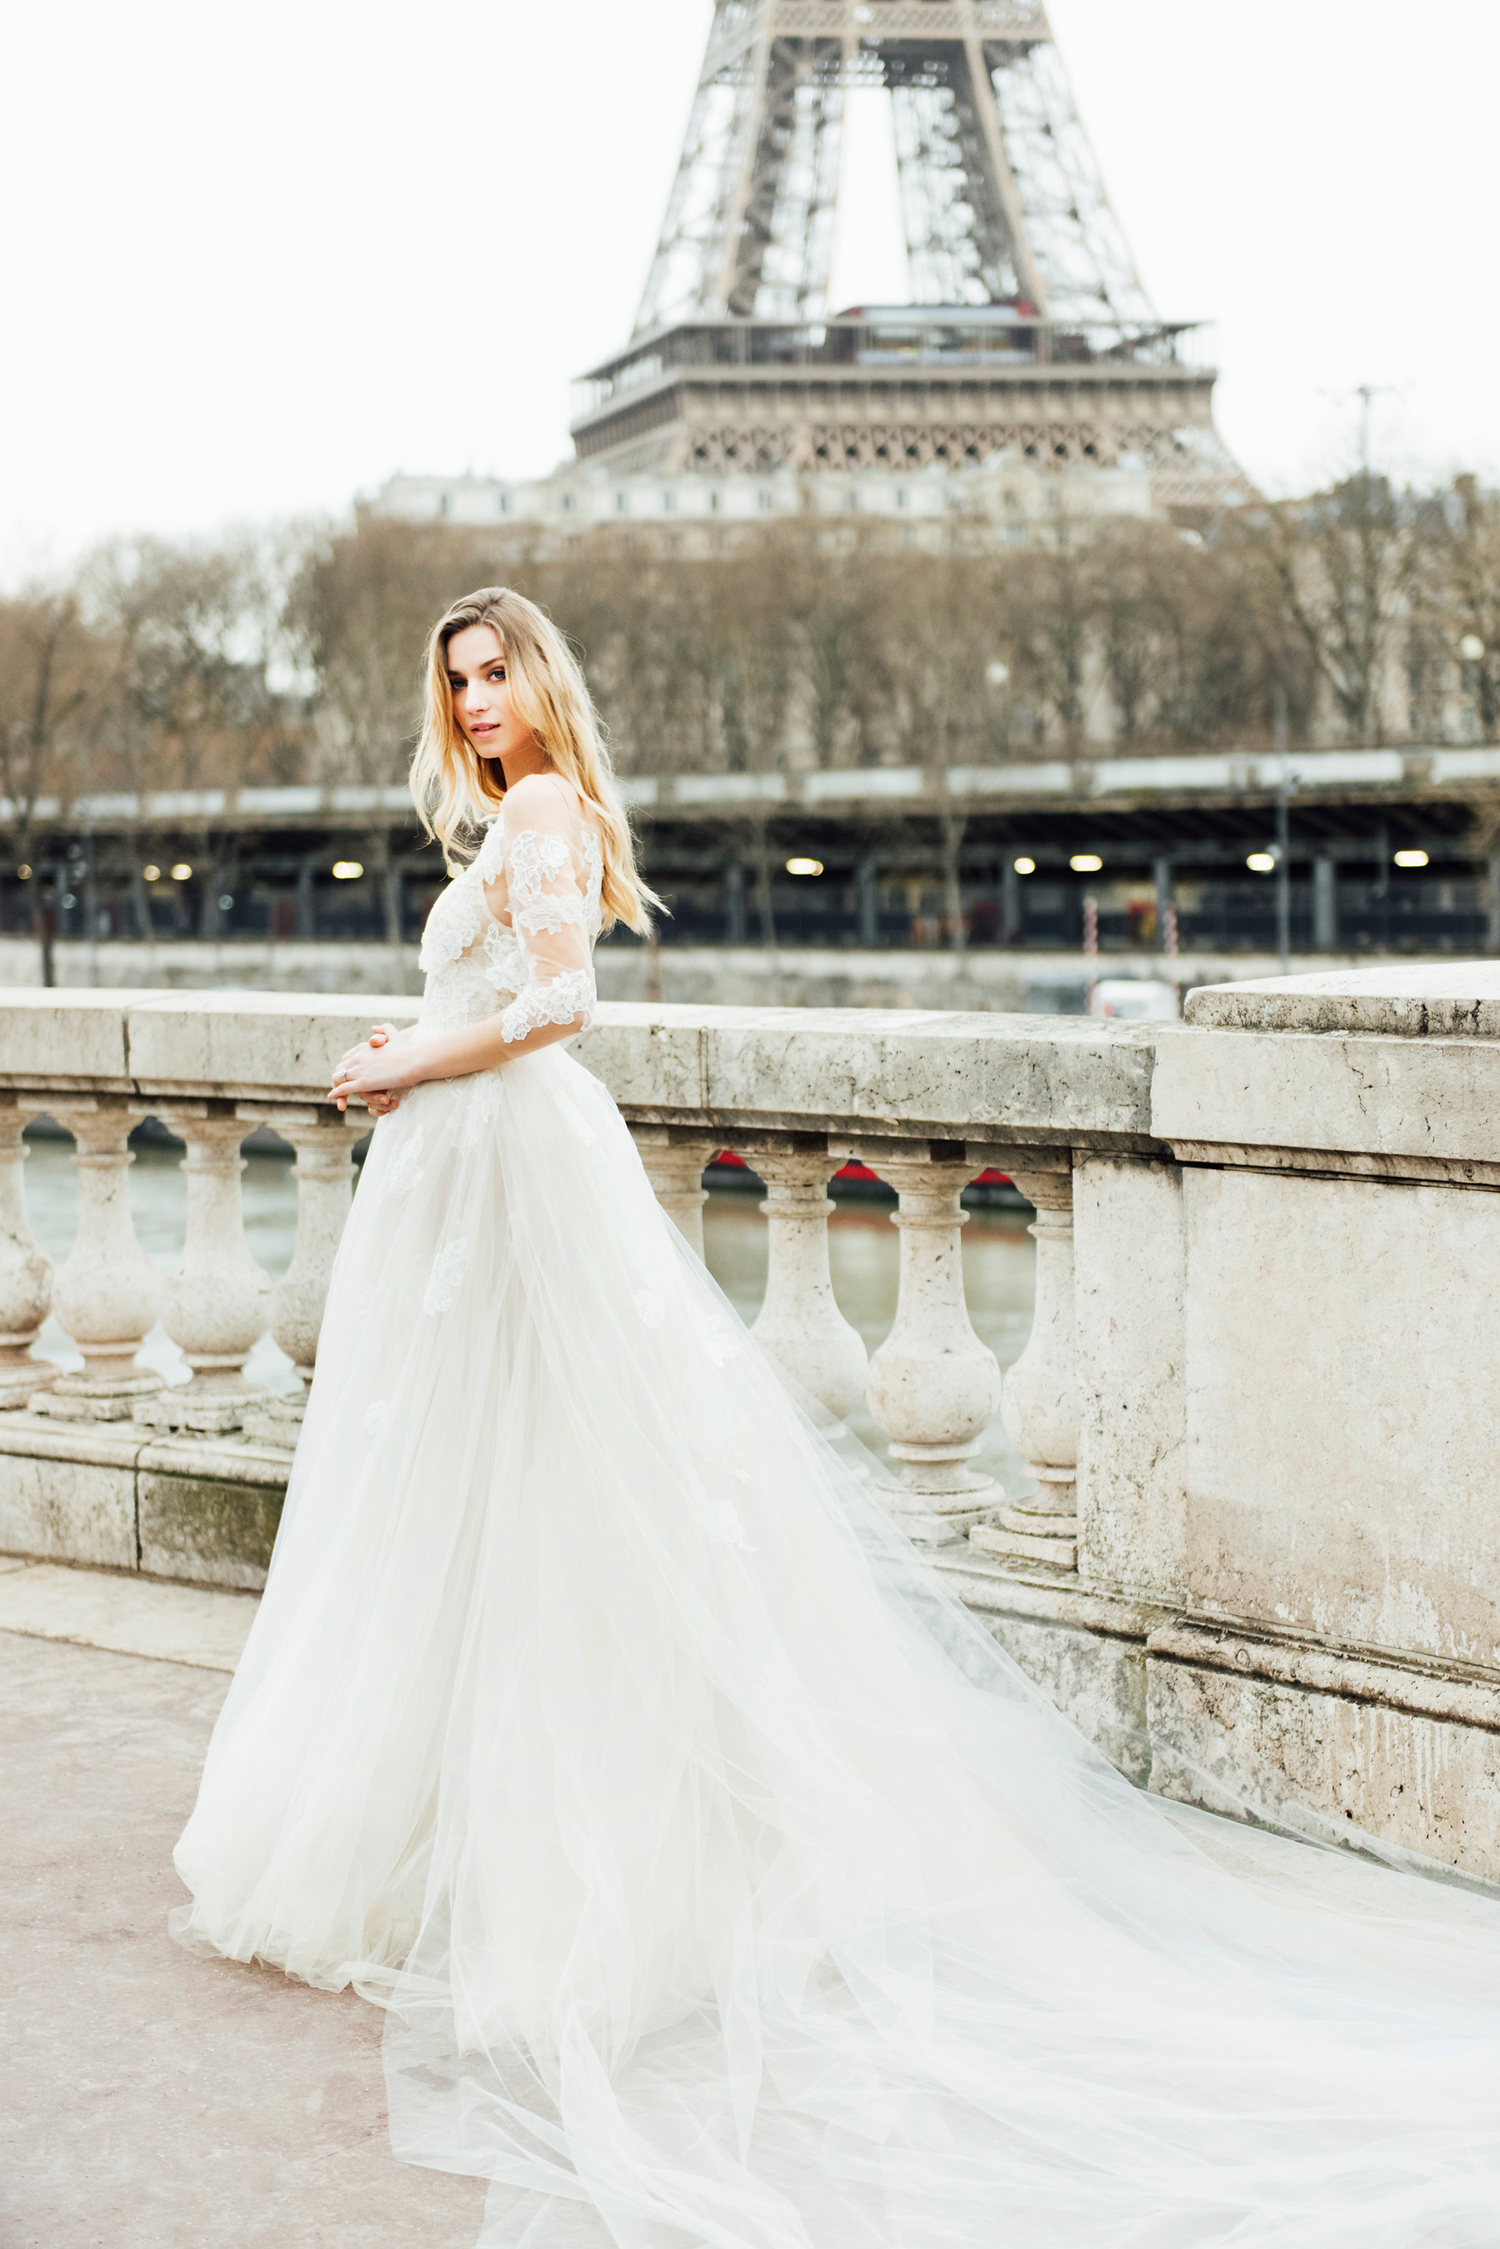 katie mitchell monique lhuillier bridal paris france wedding photographer_05.jpg